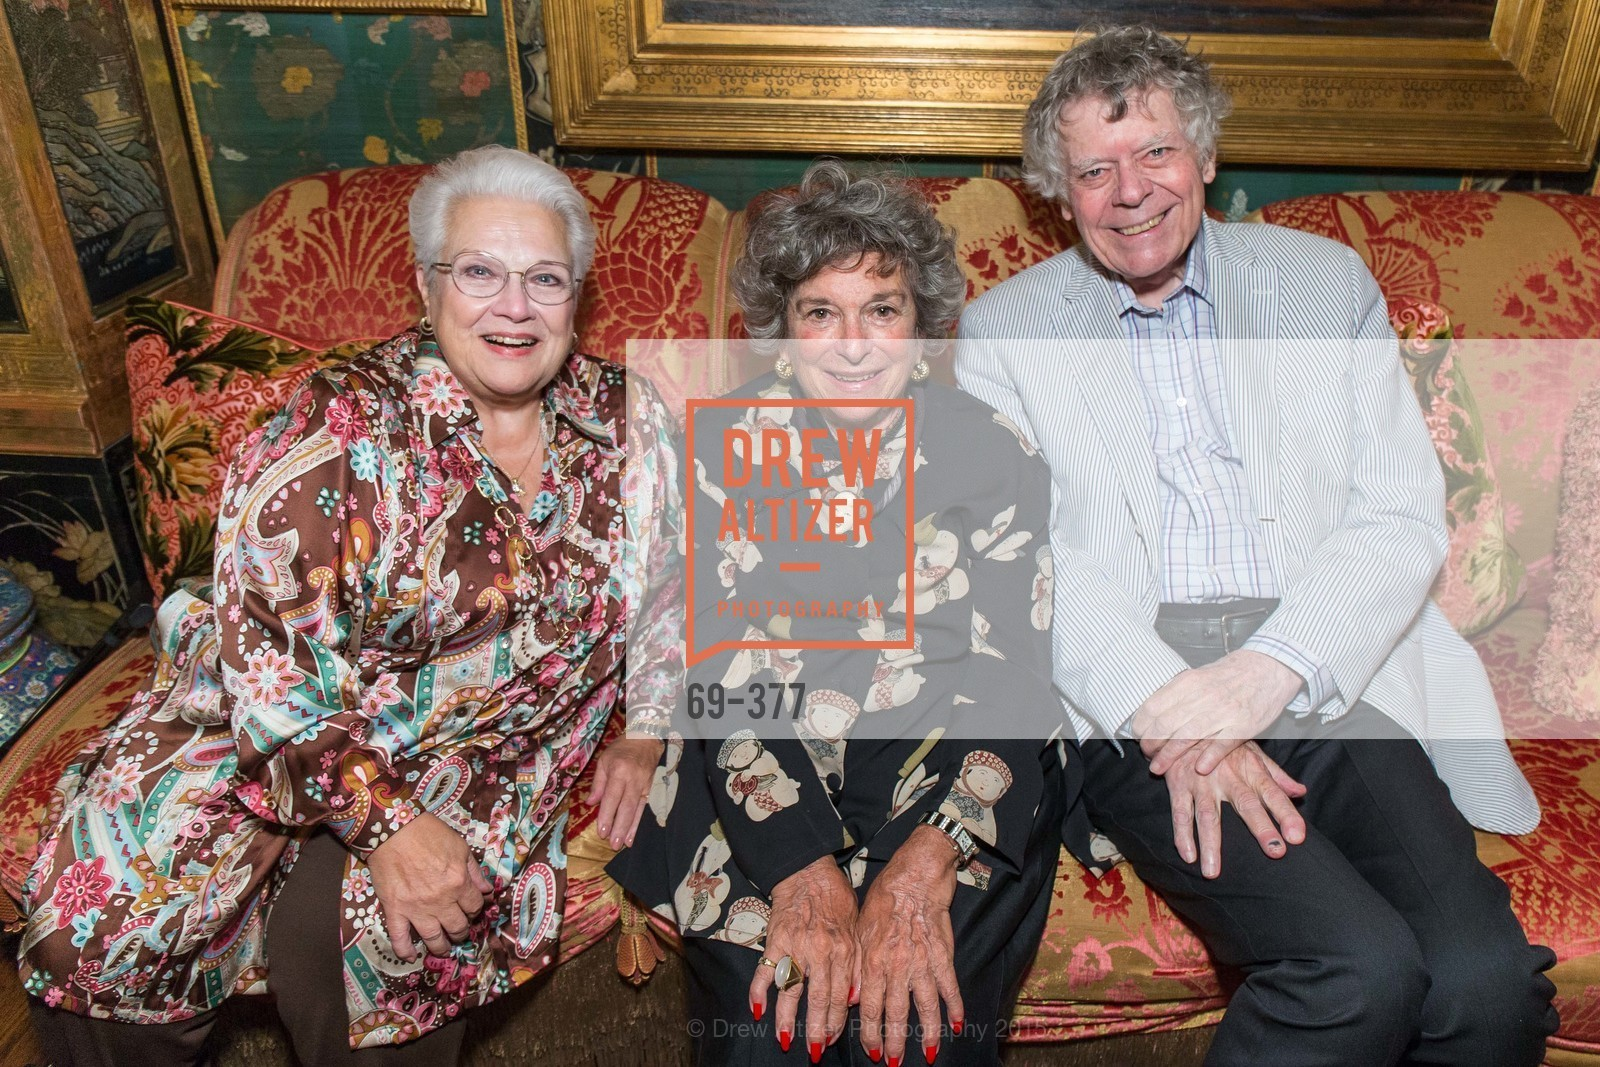 Marilyn Horne, Delia Ehrlich, Gordon Getty, Ann and Gordon Getty Host SF Conservatory of Music with Marilyn Horne, Private Residence, October 15th, 2015,Drew Altizer, Drew Altizer Photography, full-service agency, private events, San Francisco photographer, photographer california